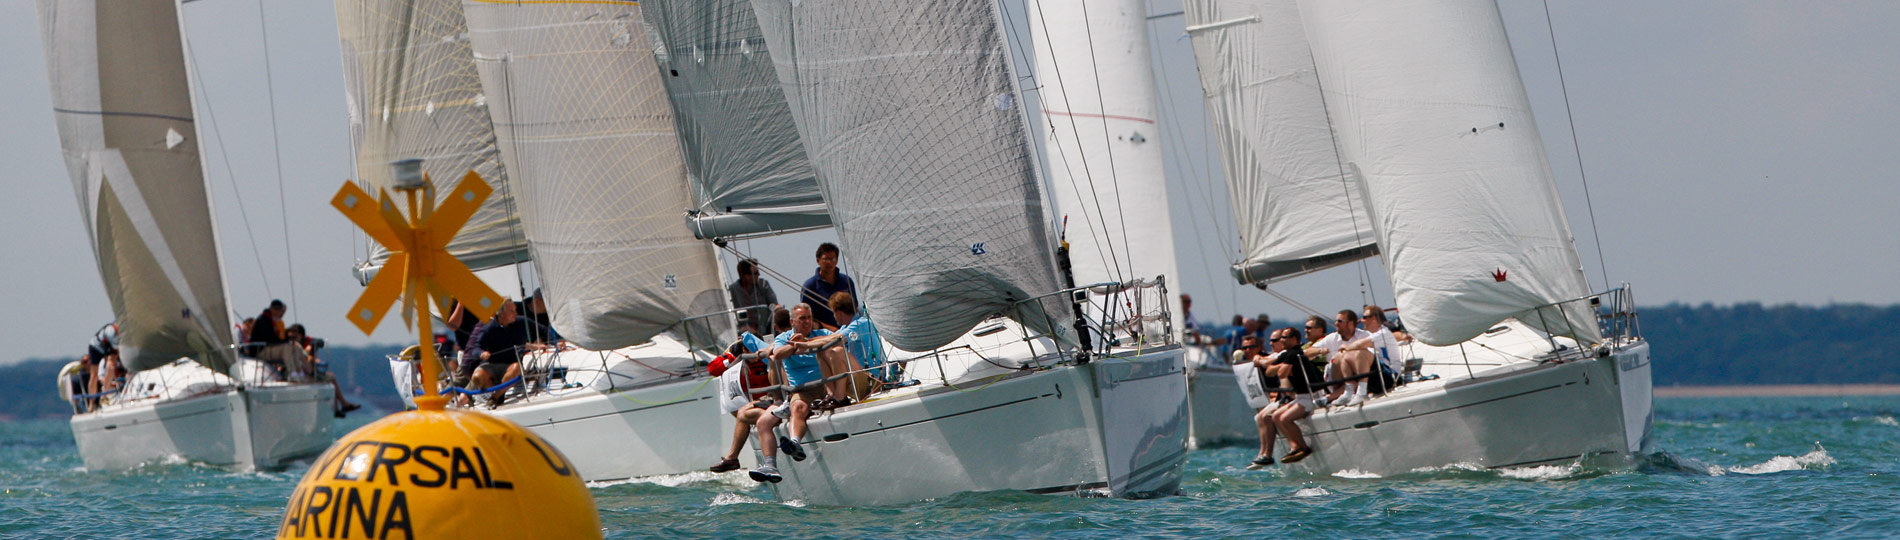 Take part in a sailing regatta regardless of age, ability or experience